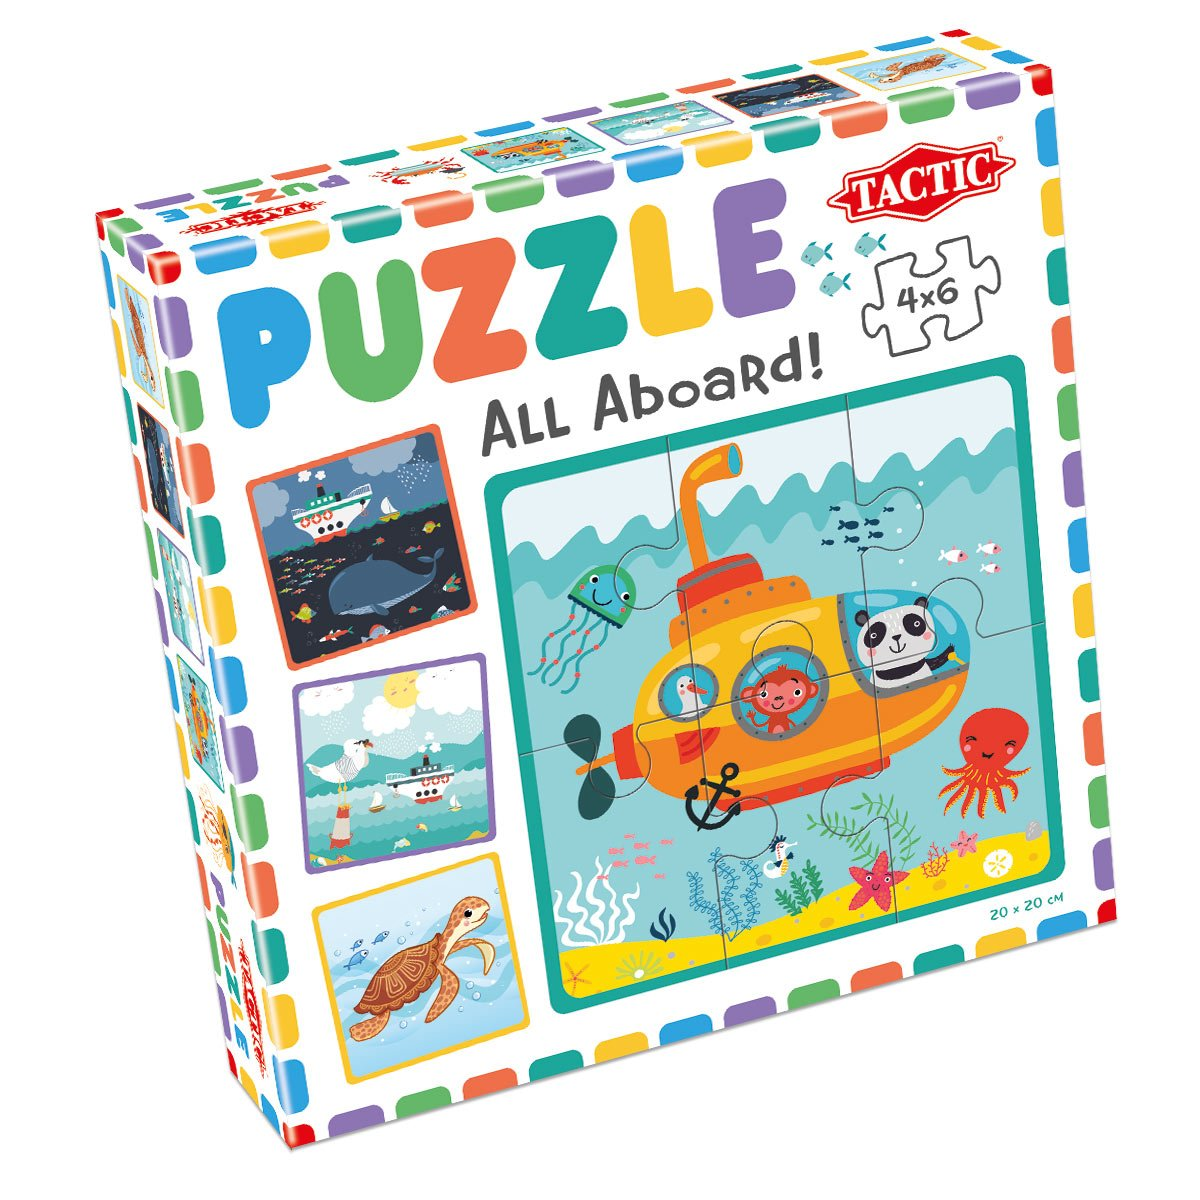 My First Puzzles 4x6 pcs: All Aboard!